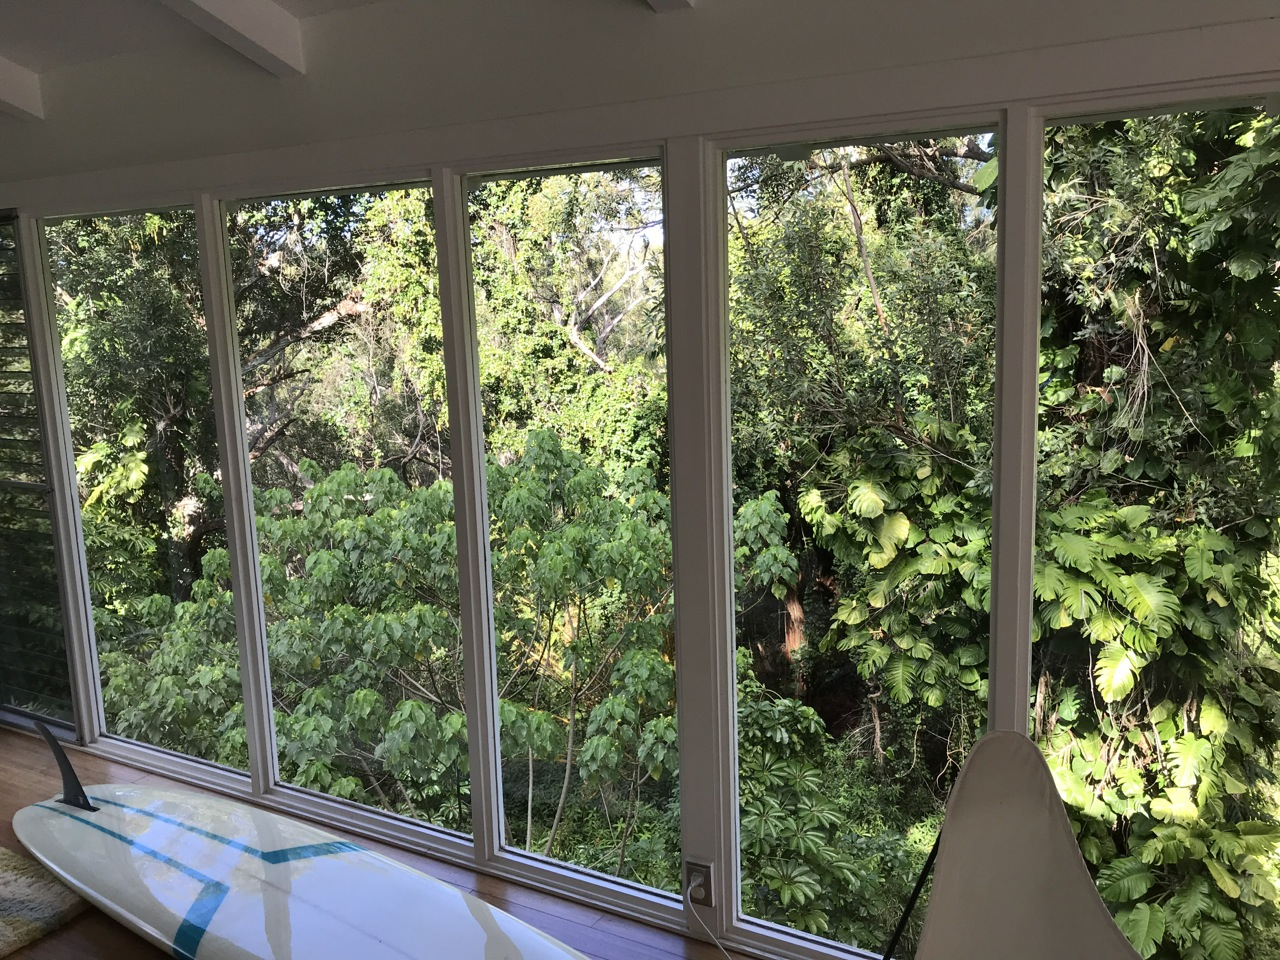 The view from one of the houses the Billabong Women's team was working in - they used the space for live video sessions